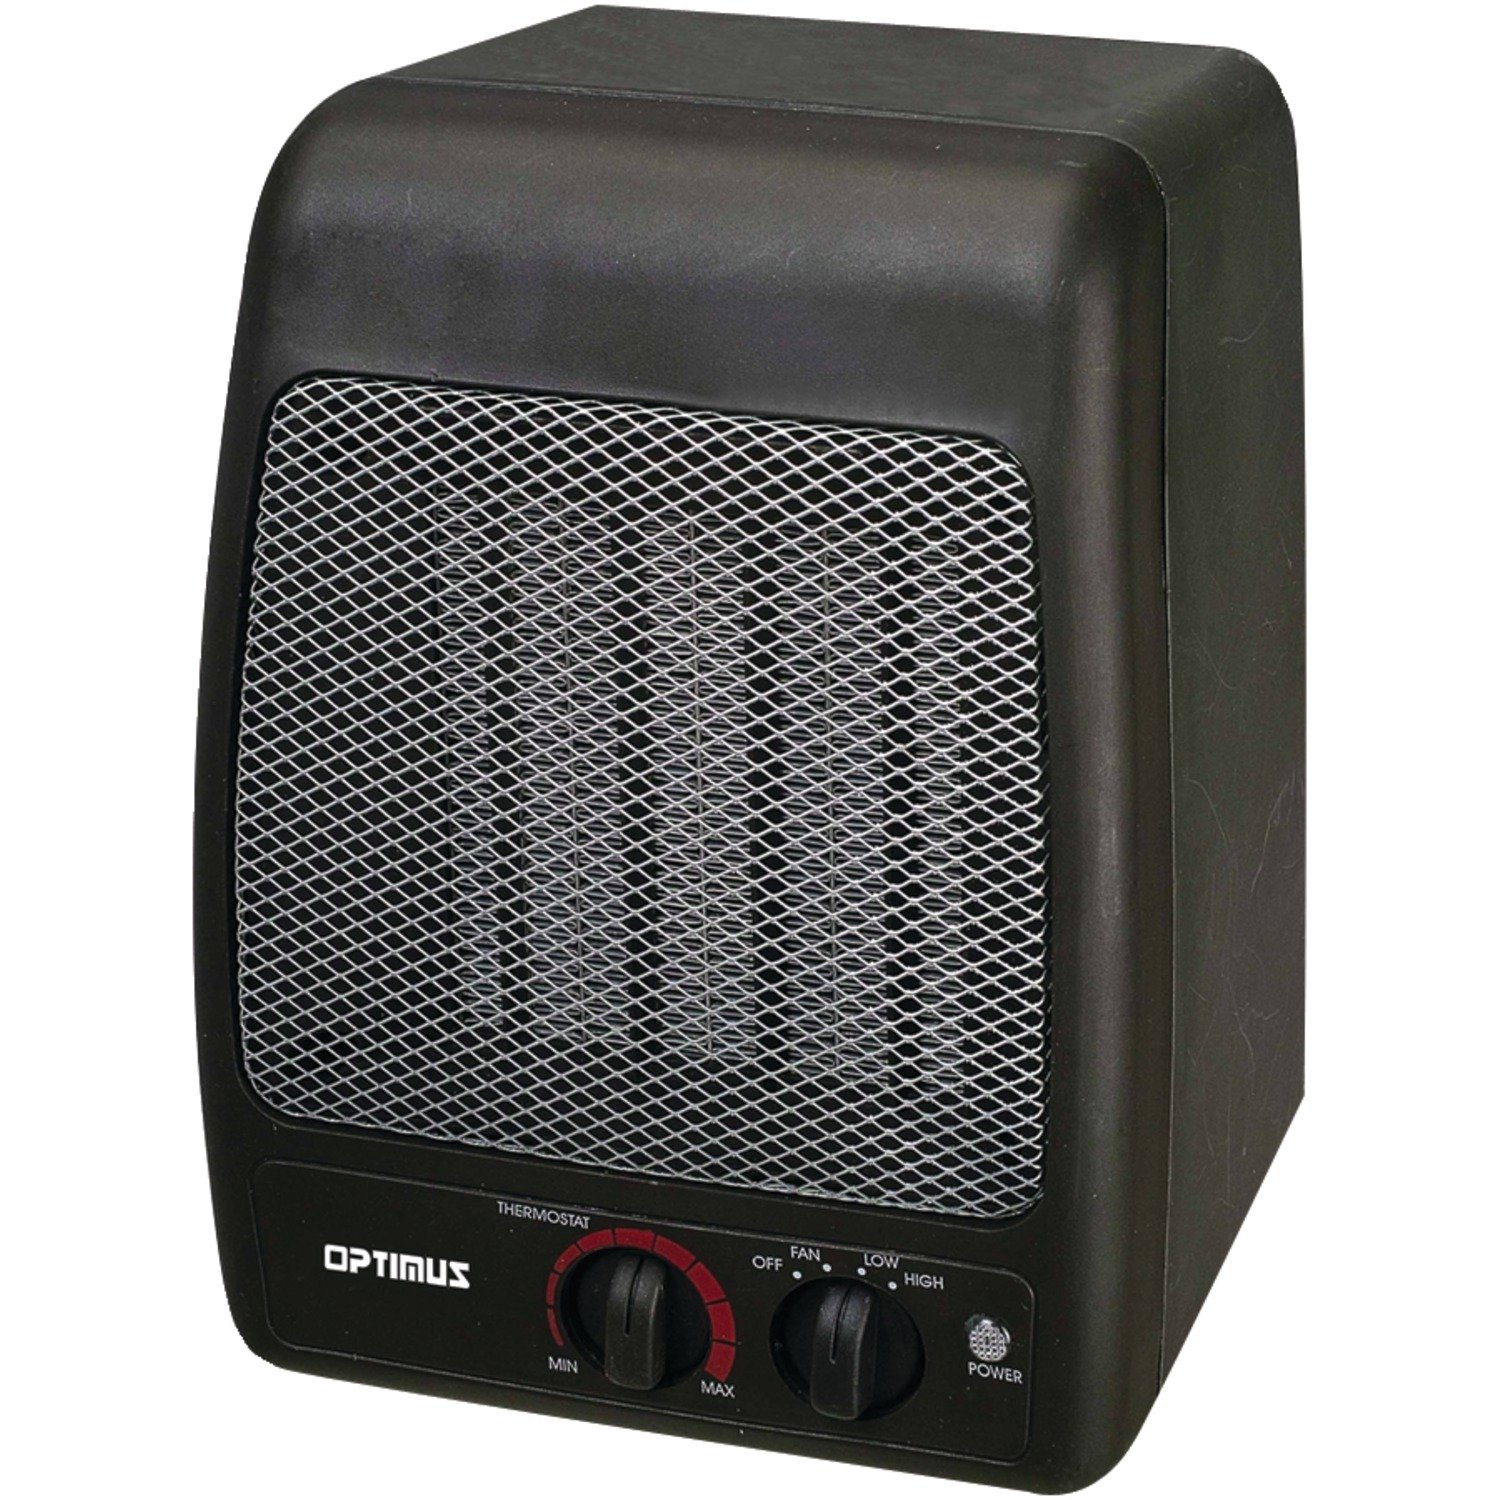 1500W SPACE SAVING PORTABLE CERAMIC HOME HAUSE HEATER 2